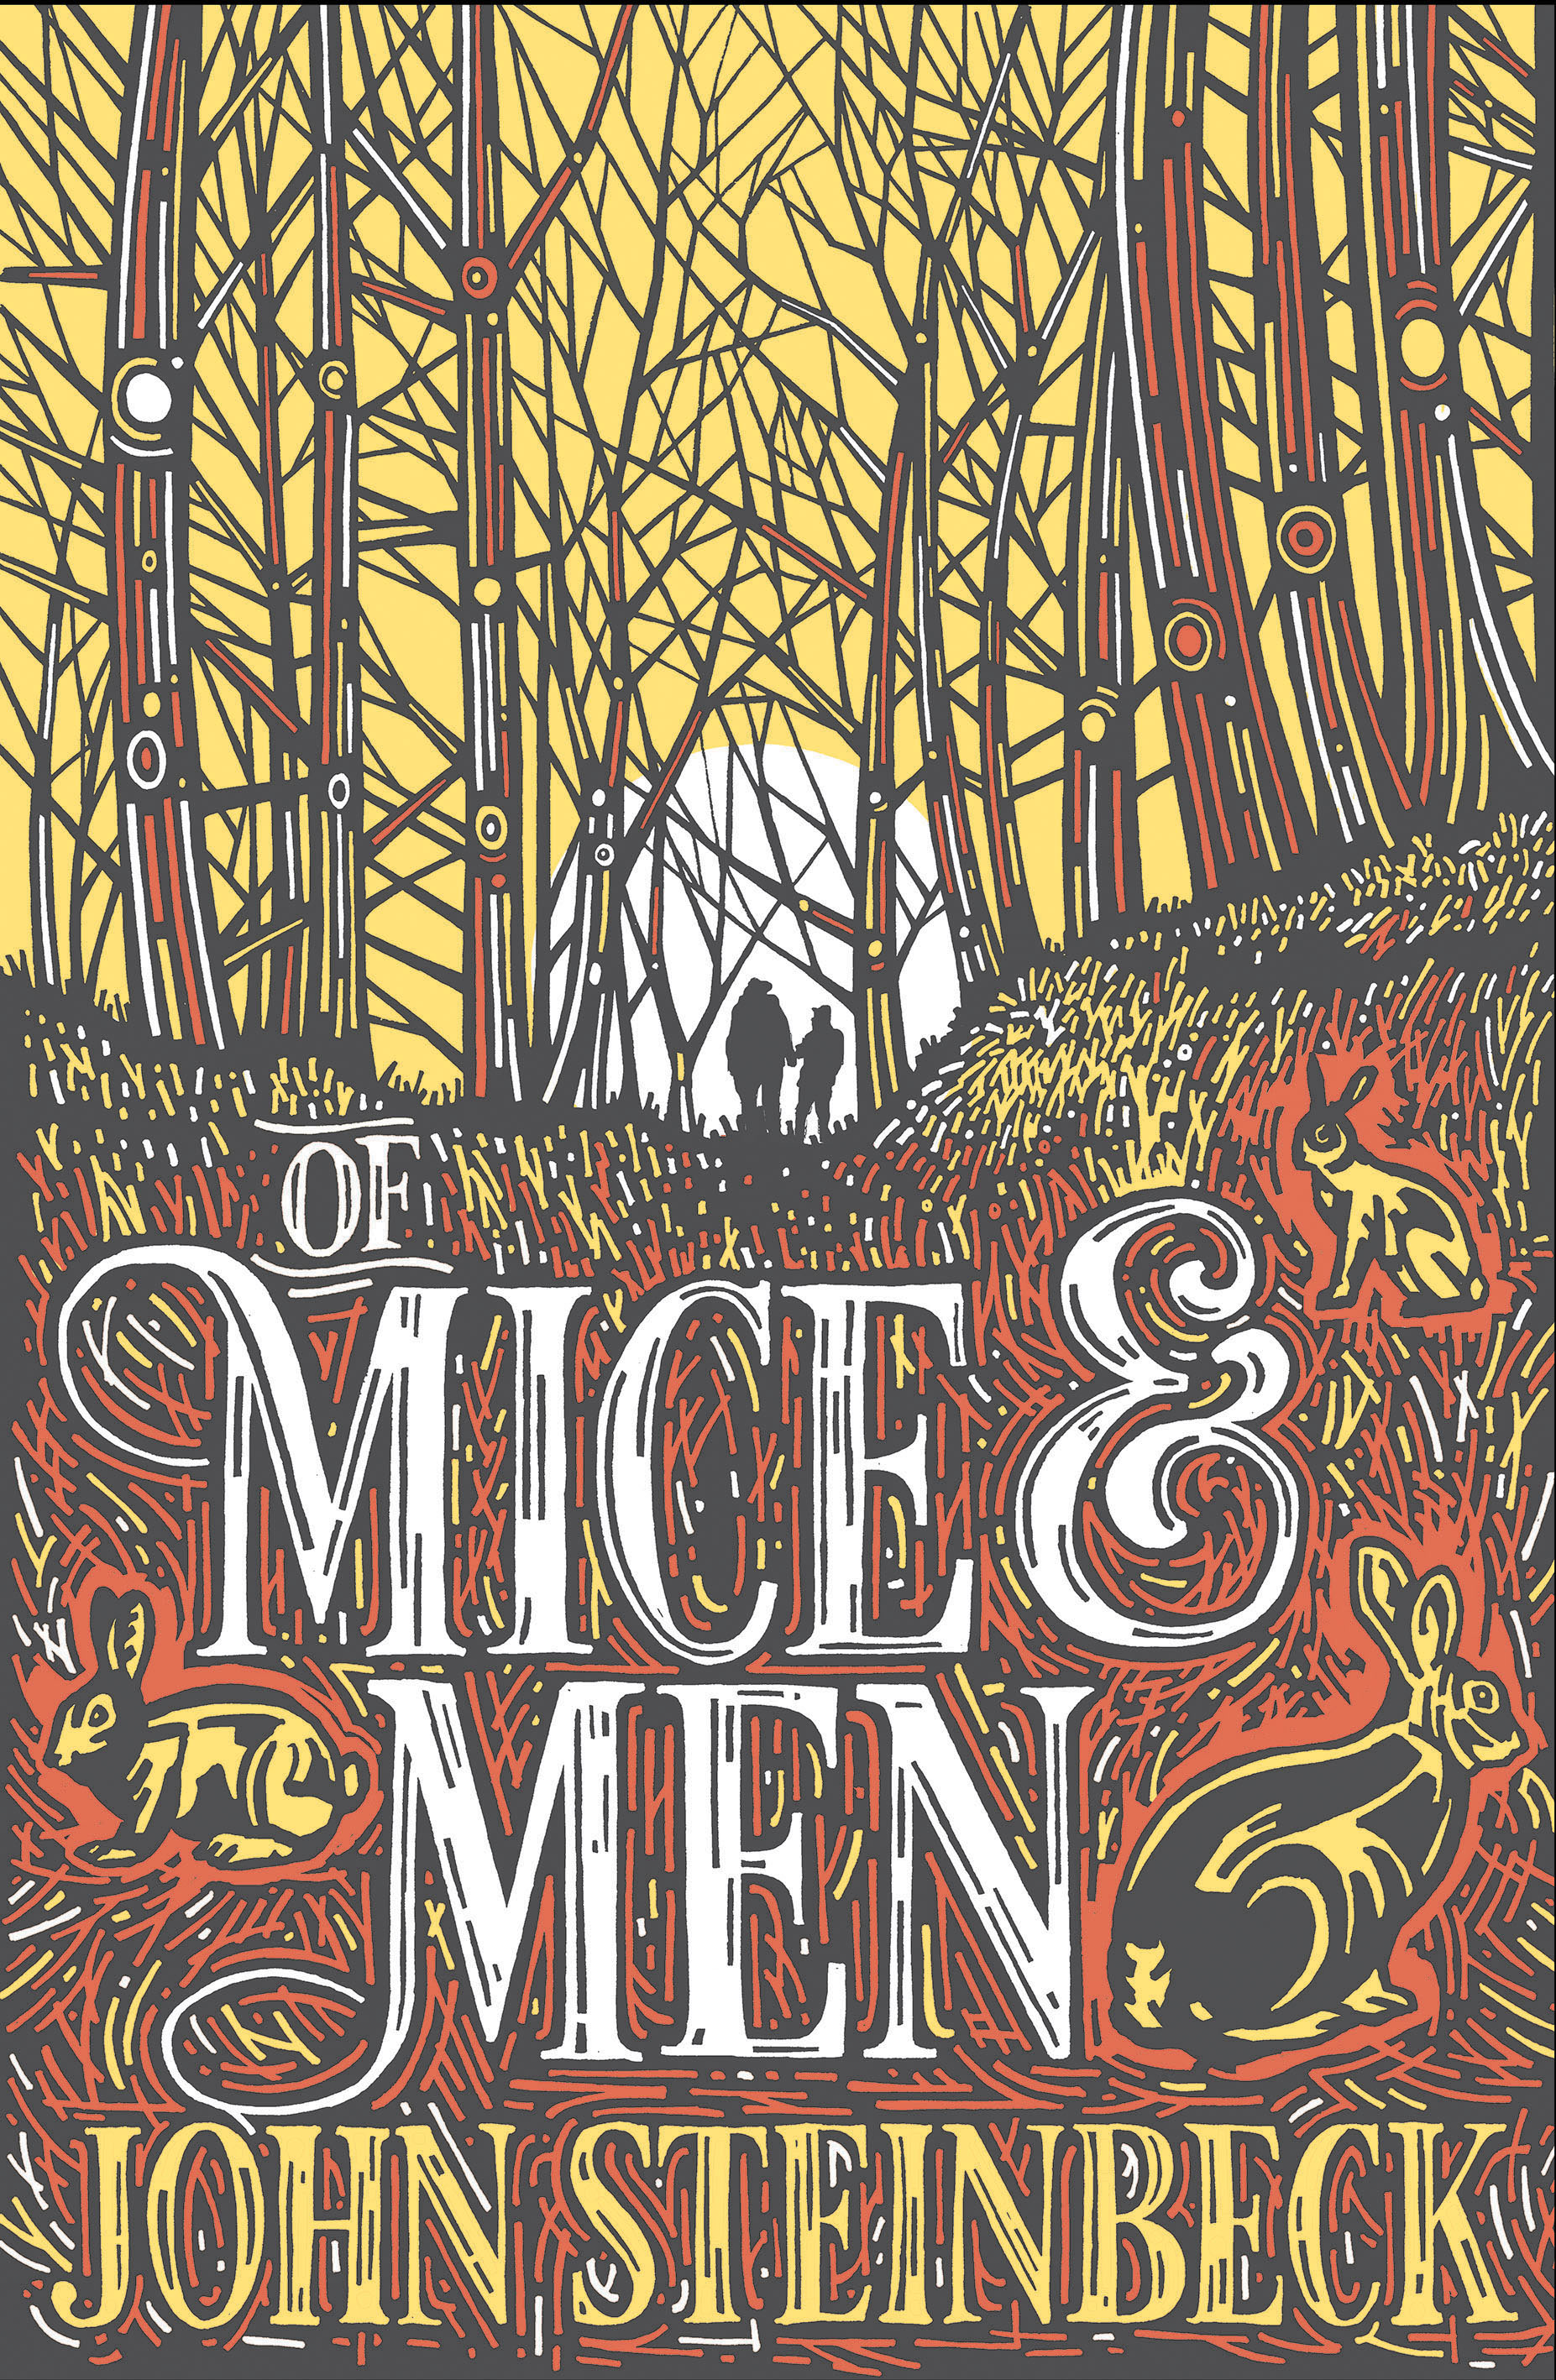 Dyslexia-friendly edition of Of Mice and Men by John Steinbeck